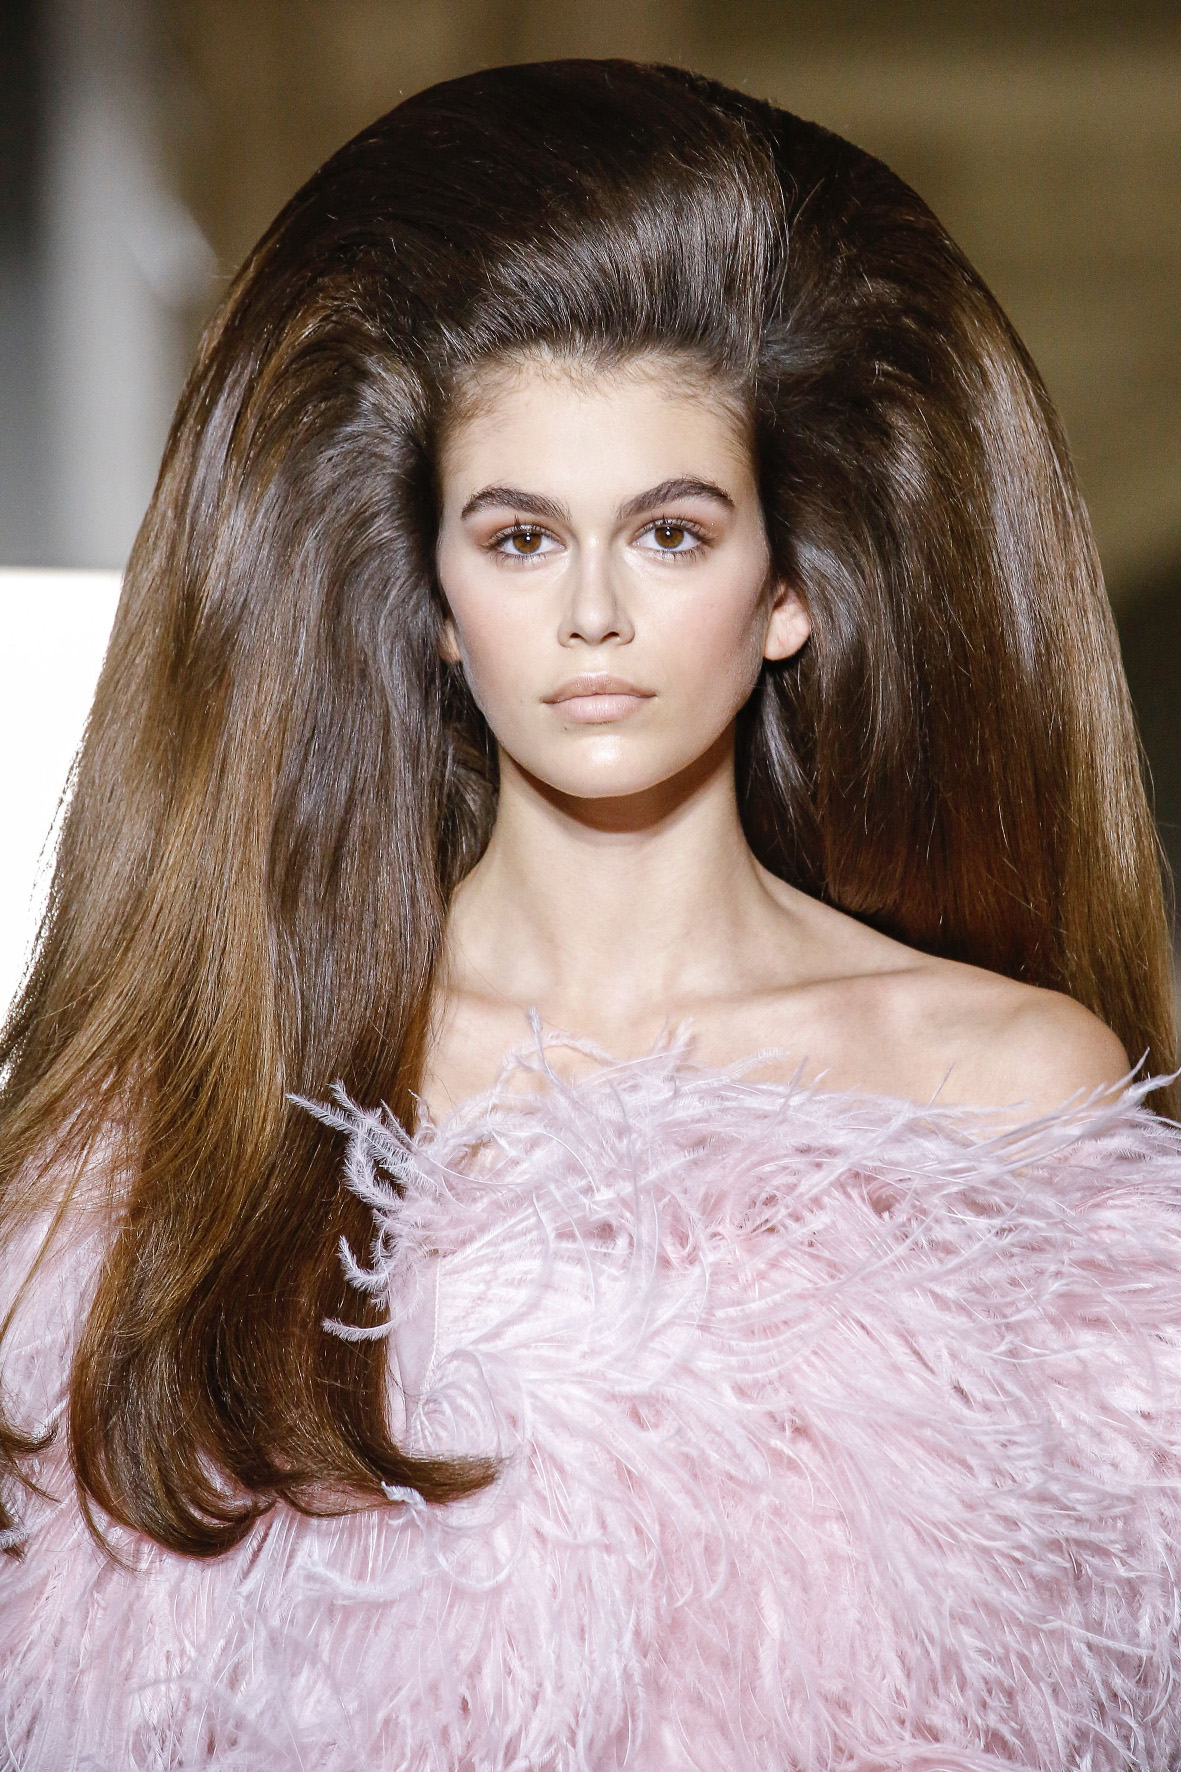 The Valentino Runway Fall Winter 2018 line during the Haute Couture Fashion Week in Paris, France.  Model Kaia Gerber was seen modeling for the runway show.  Pictured: Kaia Gerber Ref: SPL5008221 040718 NON-EXCLUSIVE Picture by: SplashNews.com  Splash News and Pictures Los Angeles: 310-821-2666 New York: 212-619-2666 London: 0207 644 7656 Milan: +39 02 4399 8577 Sydney: +61 02 9240 7700 photodesk@splashnews.com  World Rights, No France Rights